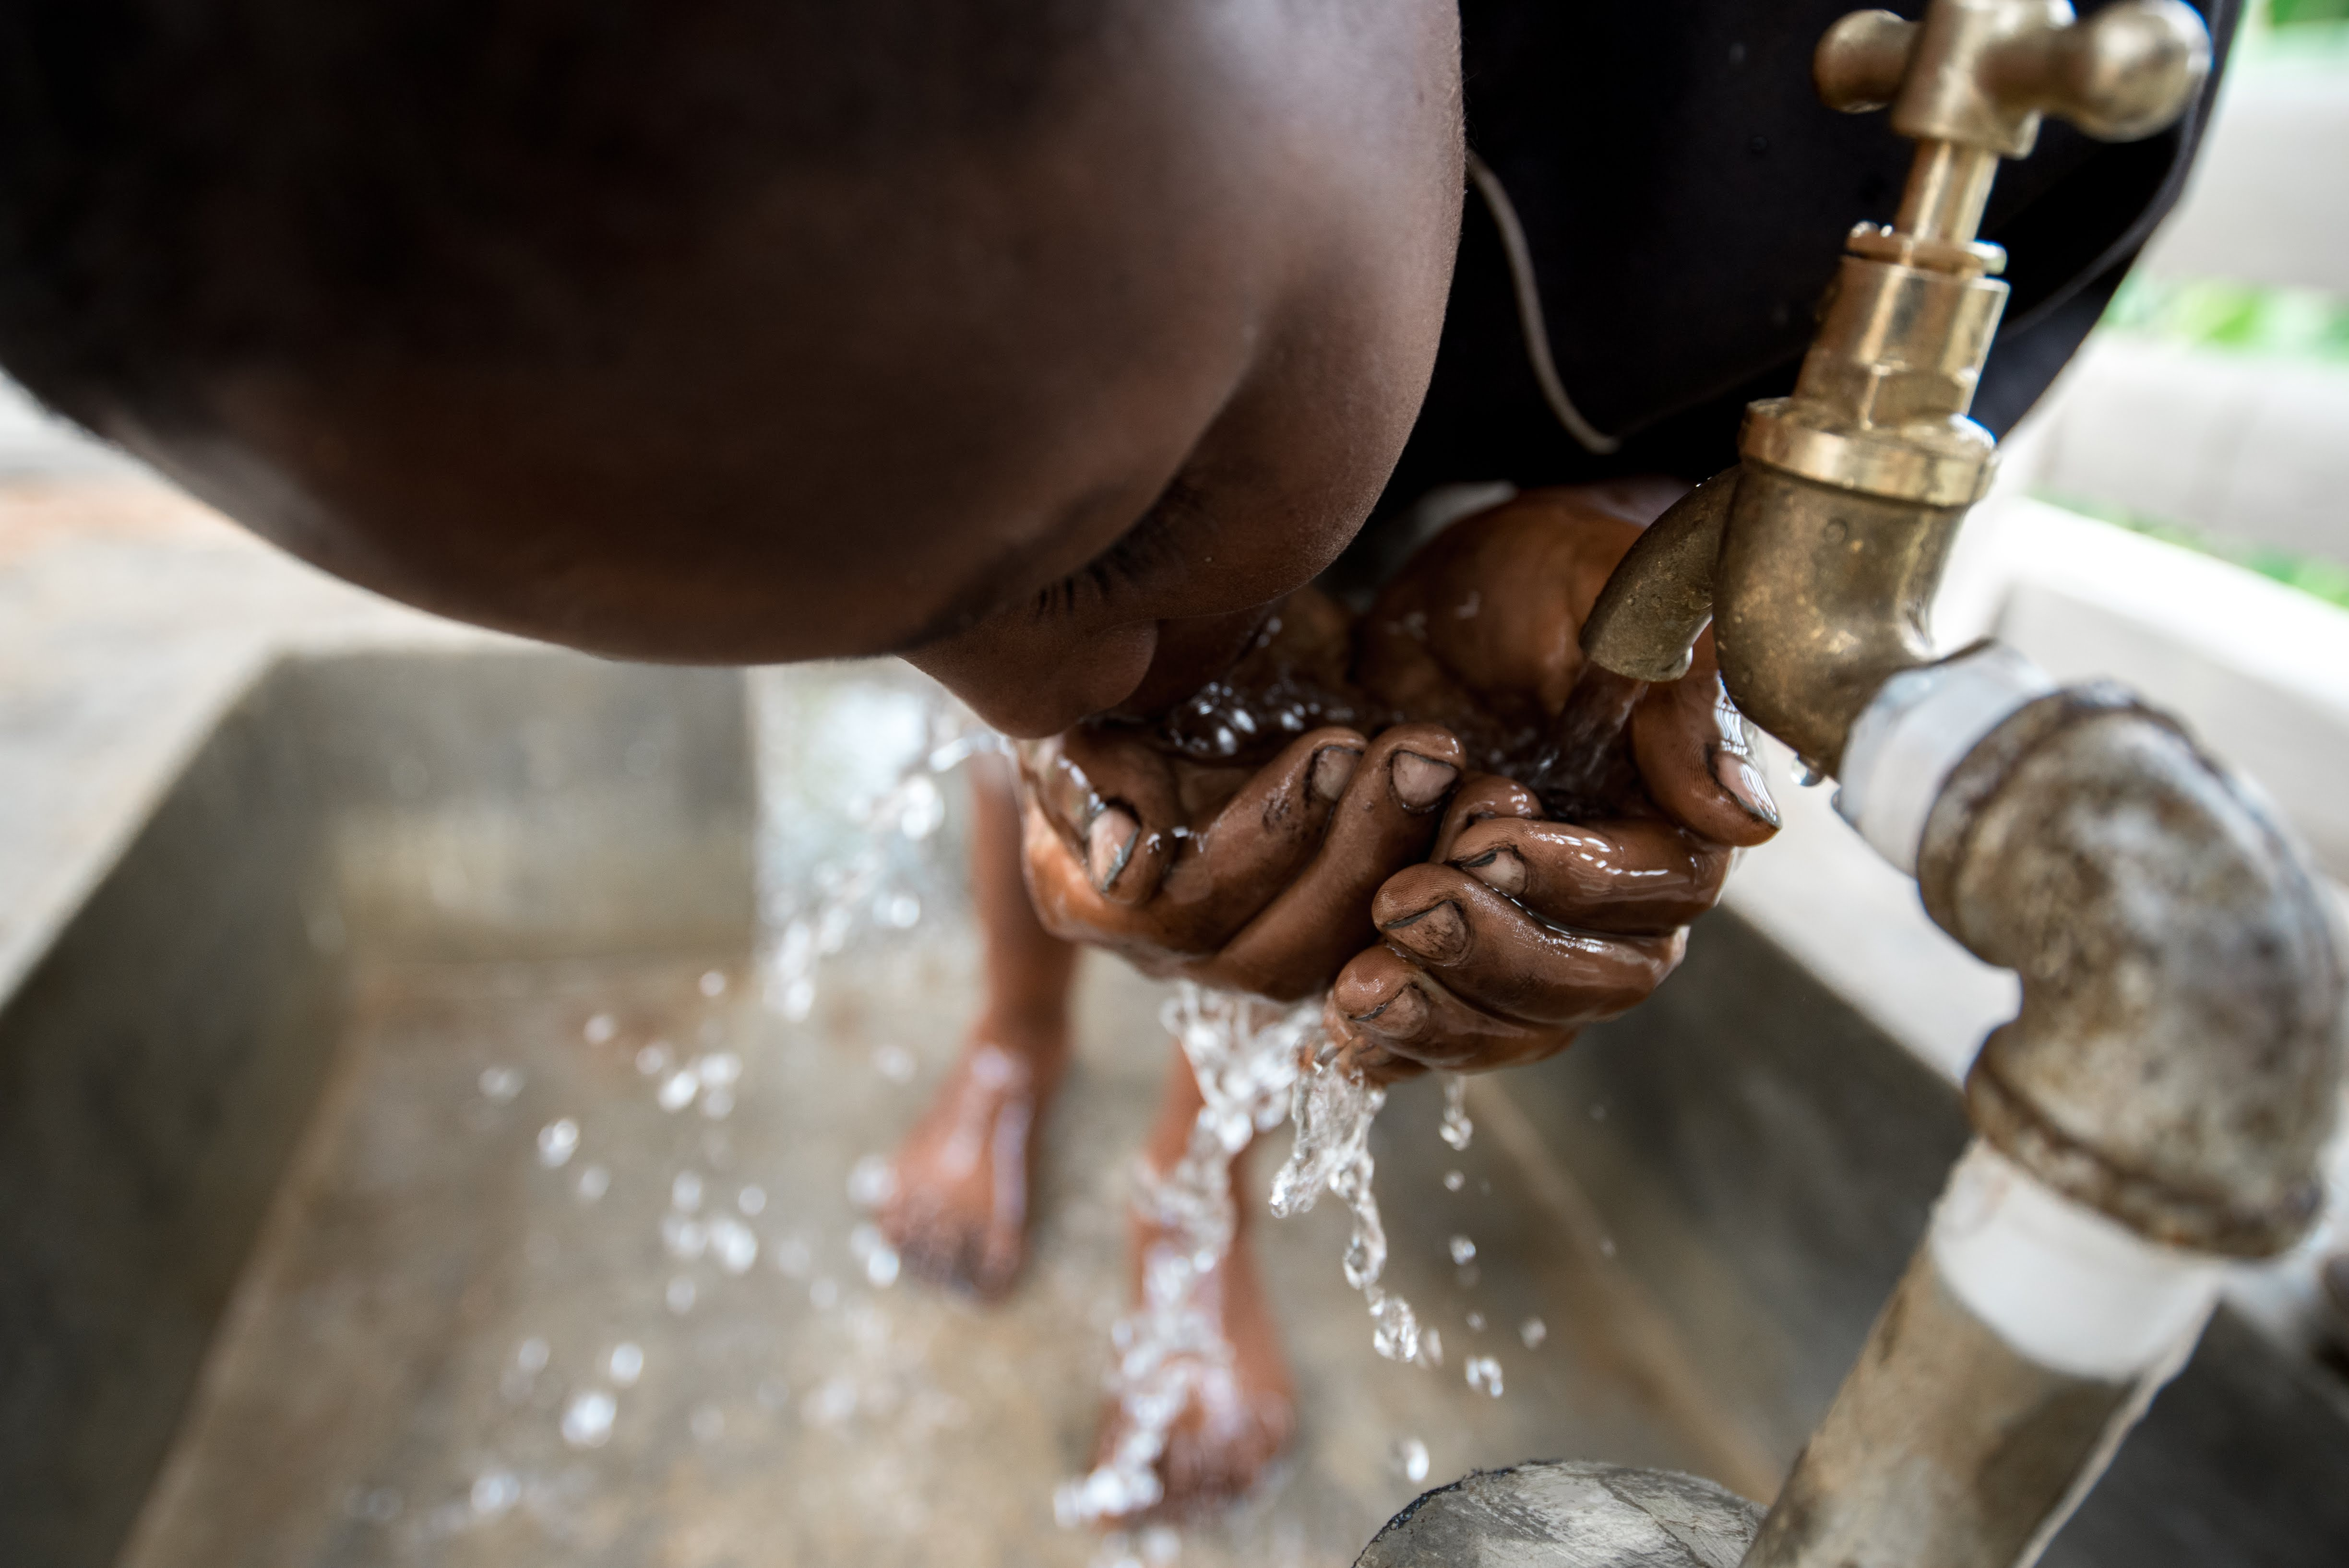 You can provide clean water when it matters most.